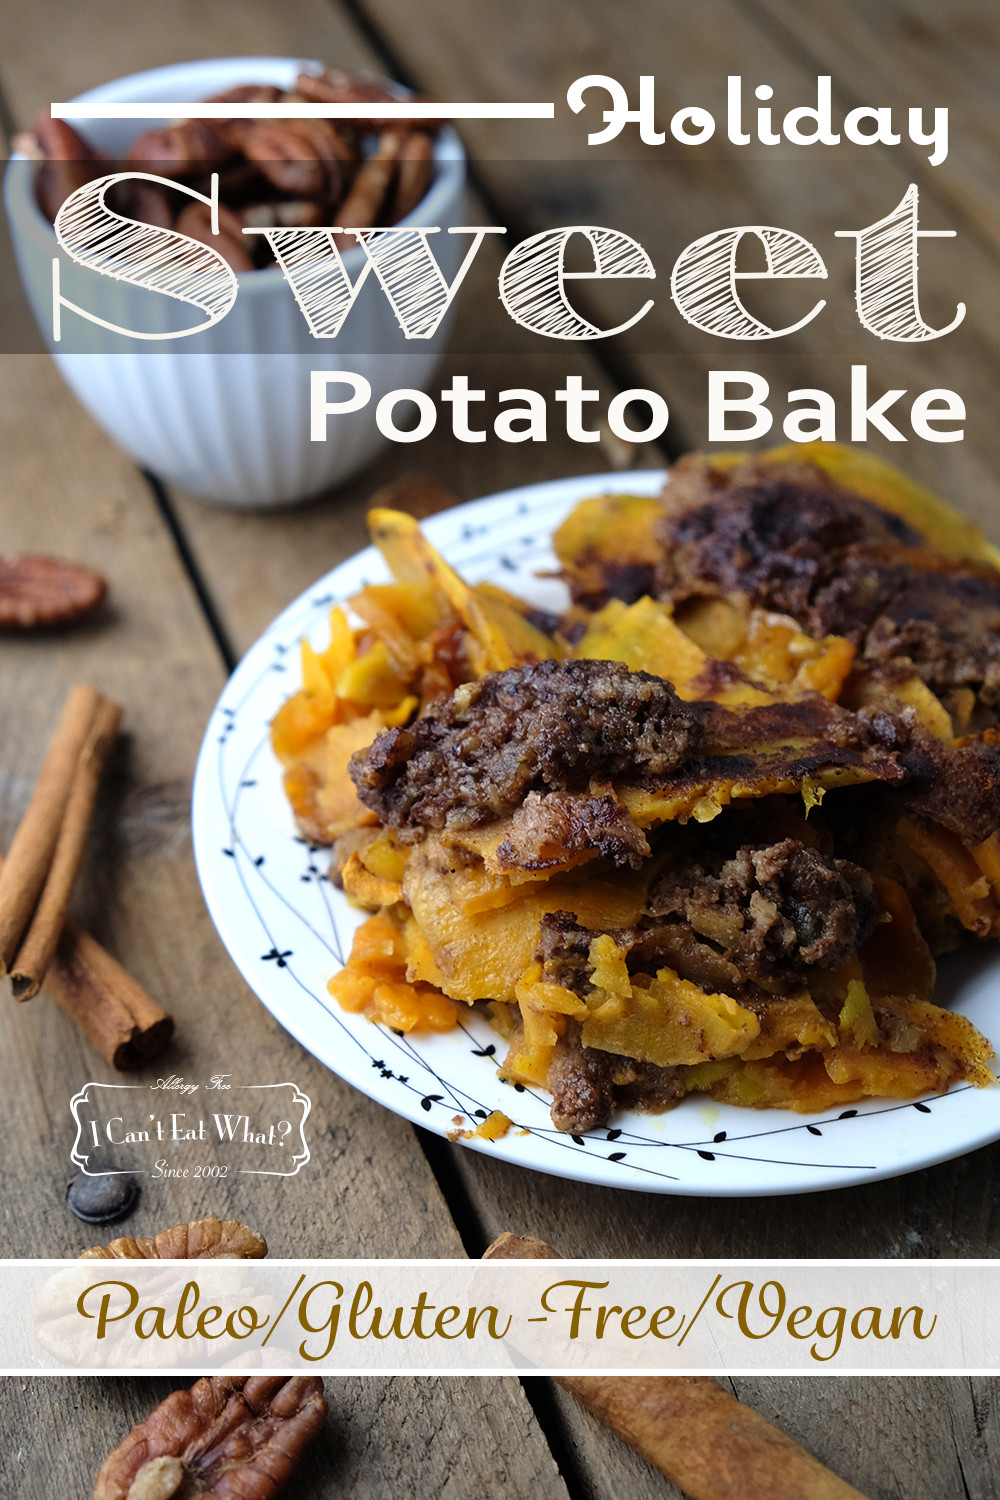 Holiday Sweet Potato Bake (Paleo/Vegan)